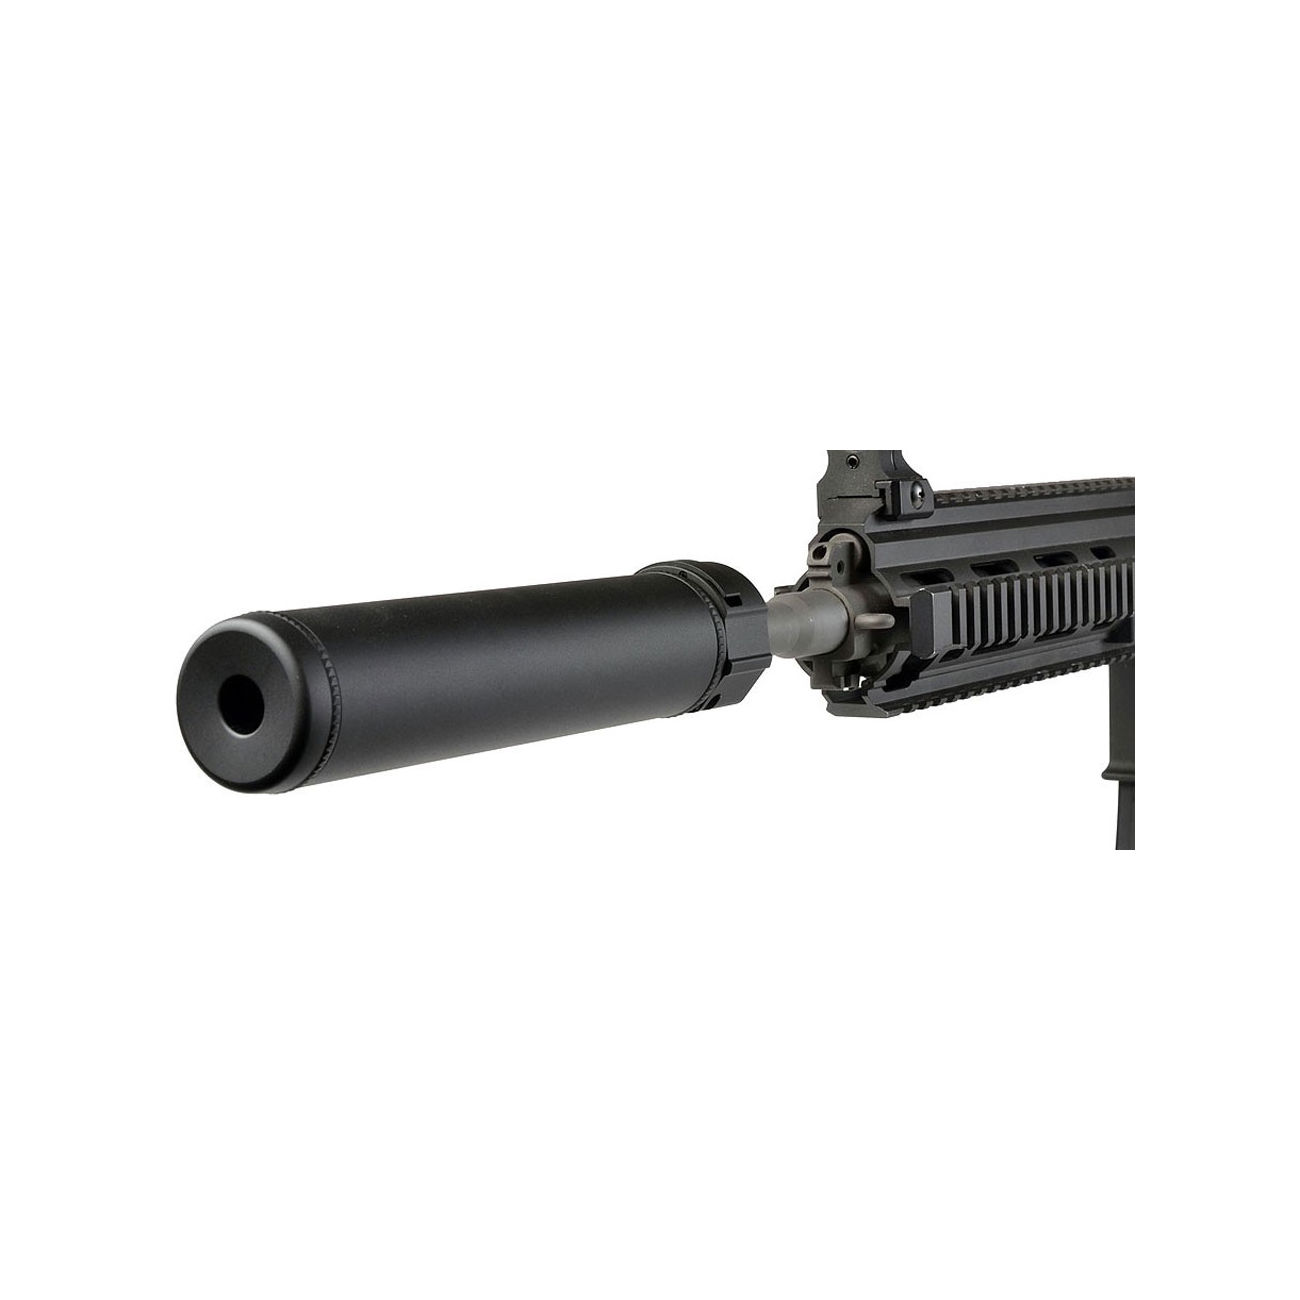 MadBull / Echo1 MK1 SR556-6.75 QD Suppressor schwarz 14mm- 3